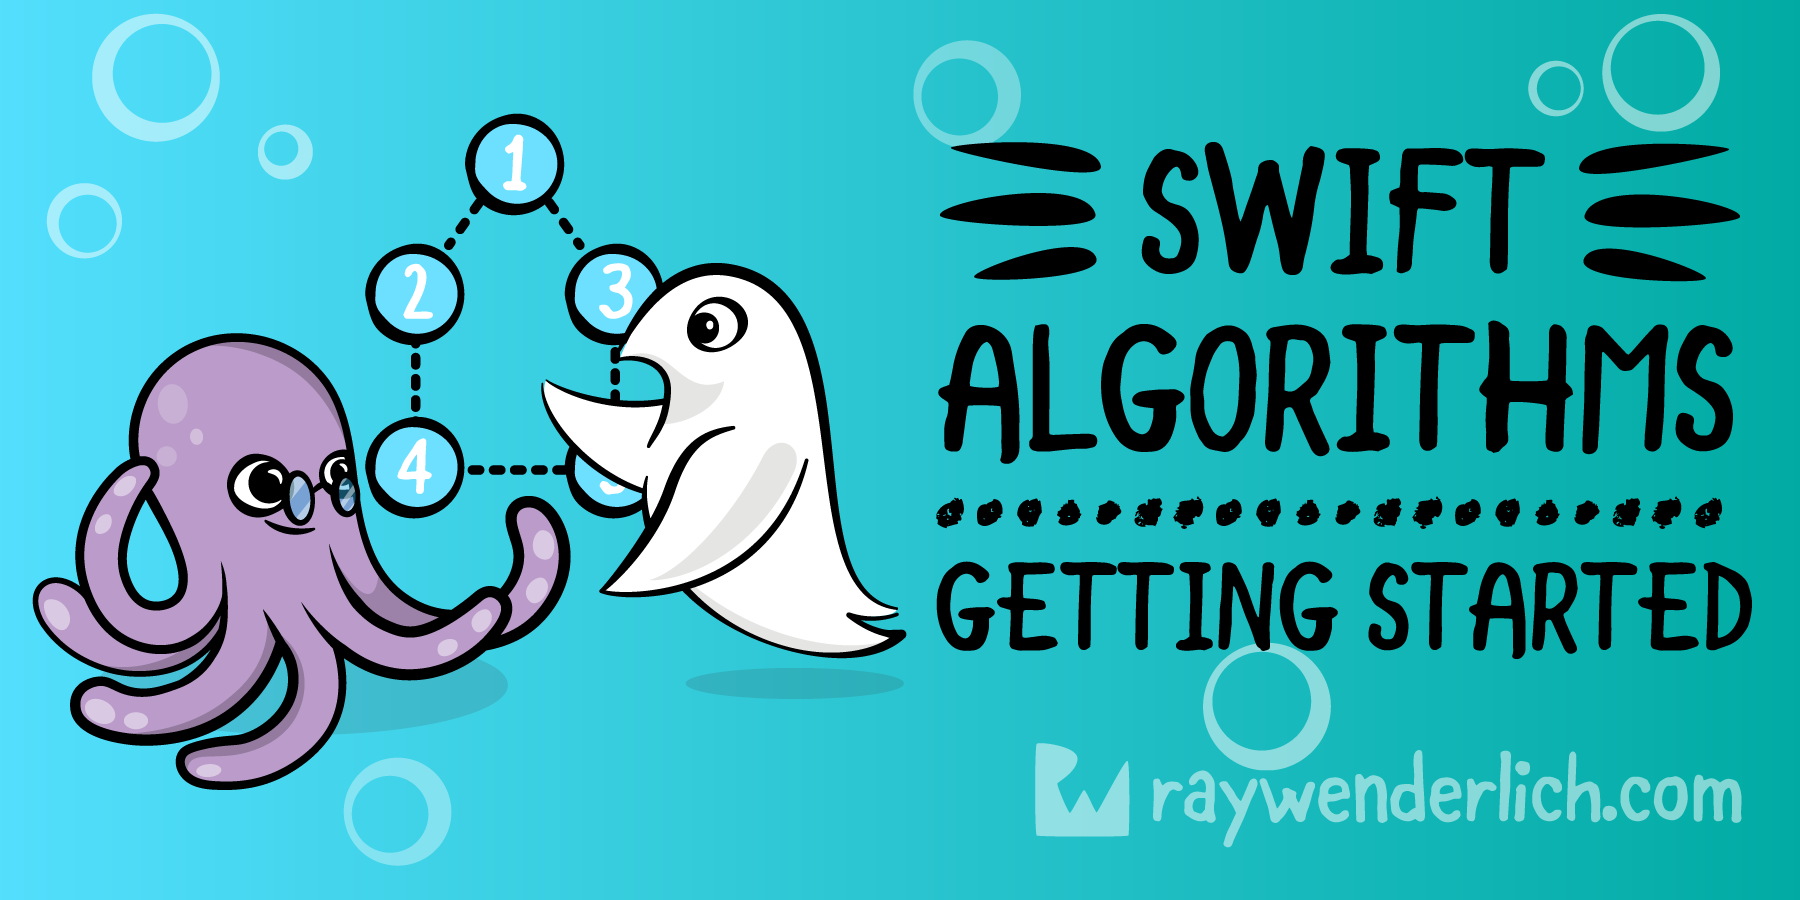 Swift Algorithms: Getting Started [FREE]